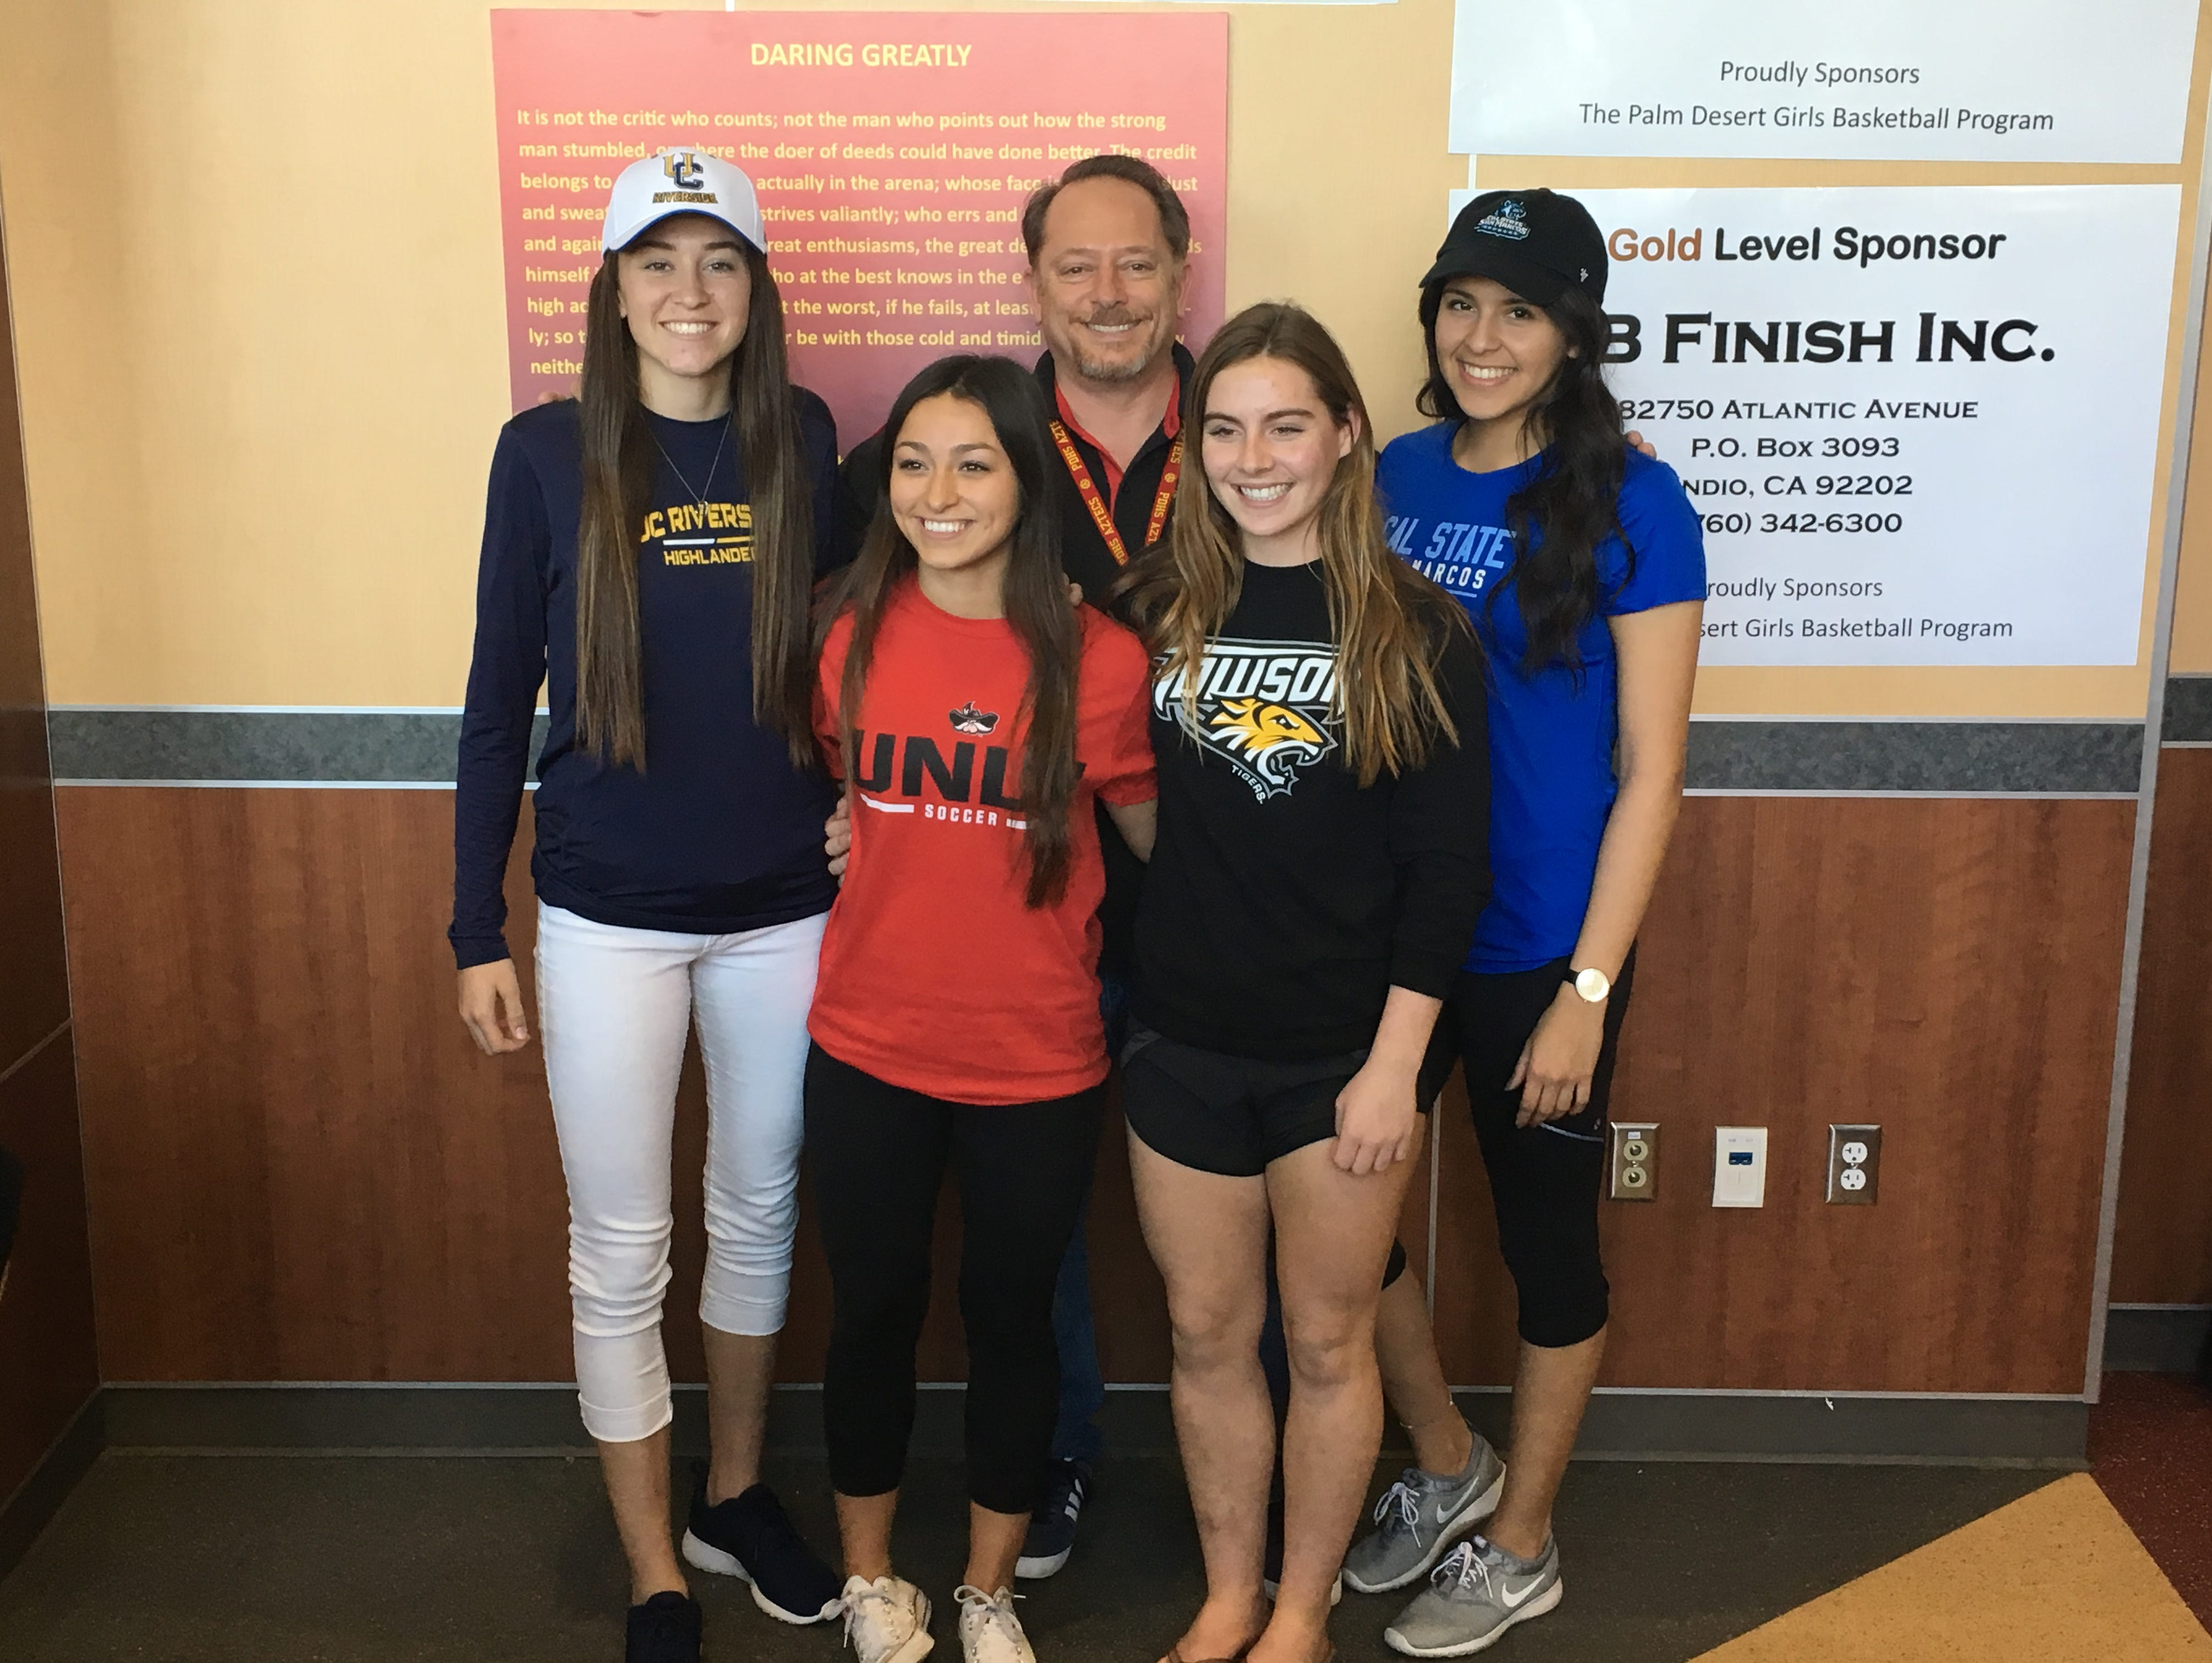 It was a great day for Palm Desert girls' soccer, as four players from the team signed their Letter of National Intent to play in college. Standing around coach Chris Keuilian are from left: Jane Jordan (UC Riverside), Alyssa Granados (UNLV), Afton Kalkoske (Towson), Alexandra Fabela (Cal State University San Marcos).